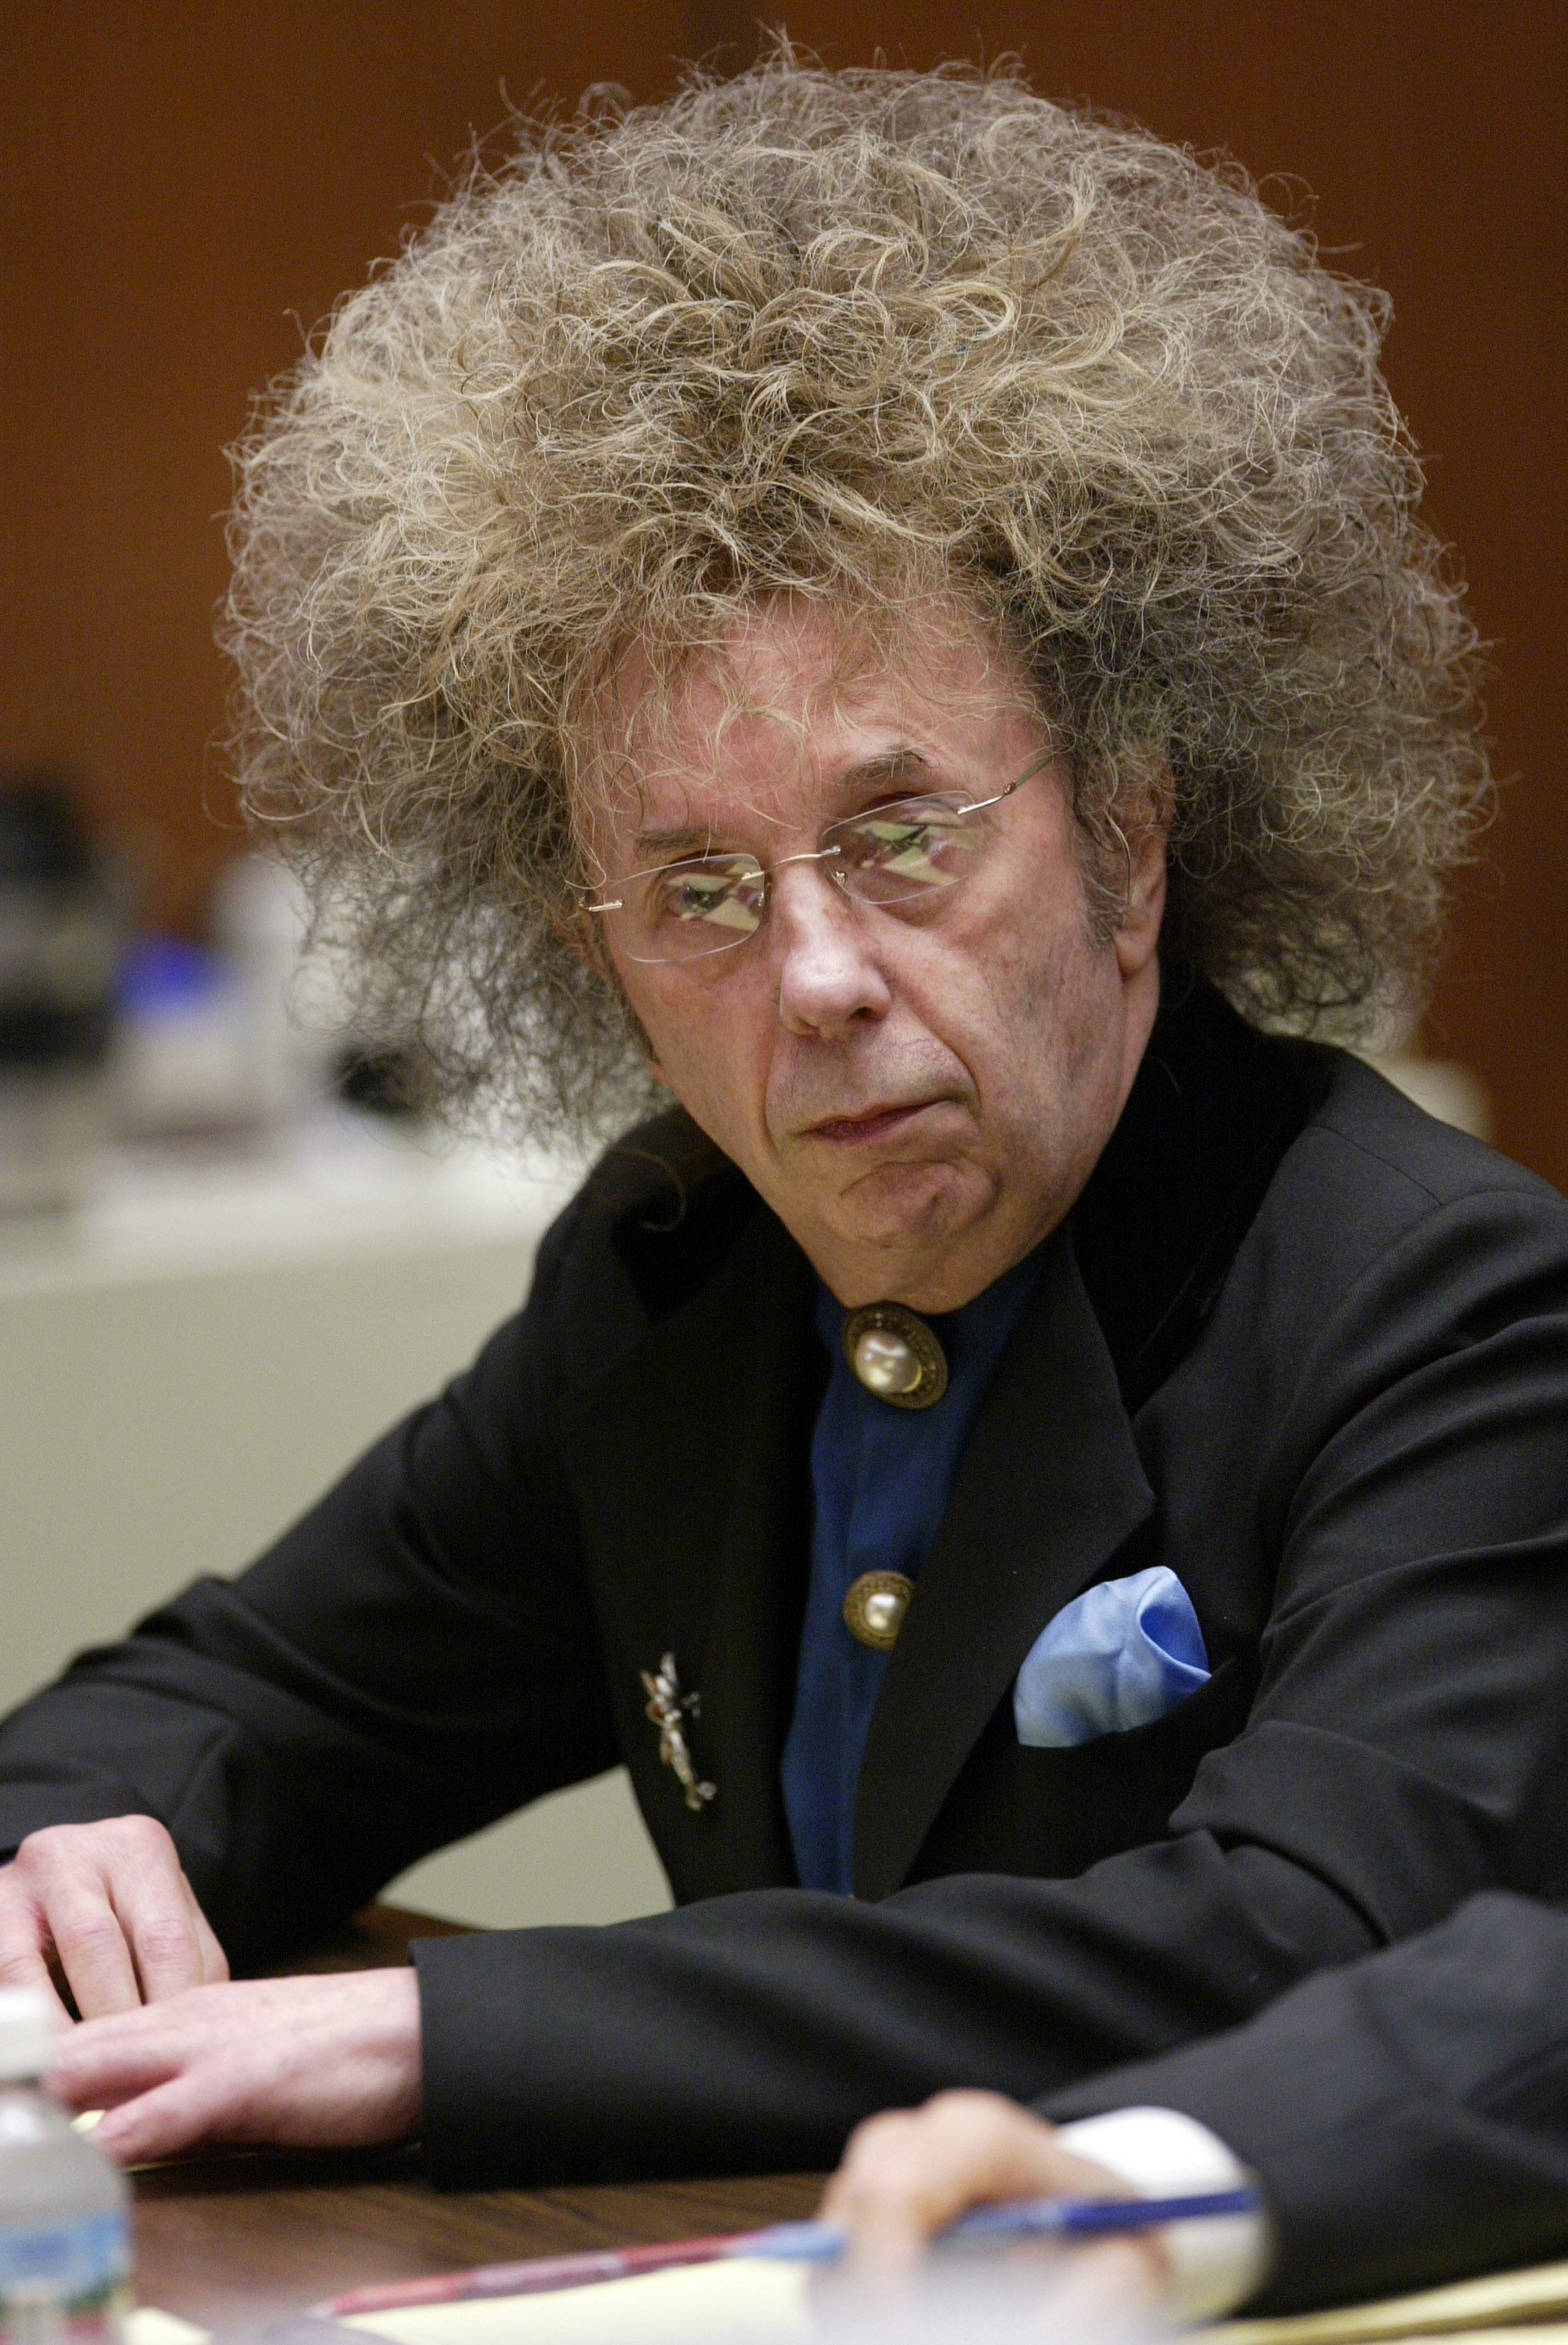 16 -  In 2003, Lana Clarkson was found dead from a gunshot wound in Phil Spector's home. He was charged with the murder, and in 2009, Spector was found guilty and sentenced 19 years to life in prison.